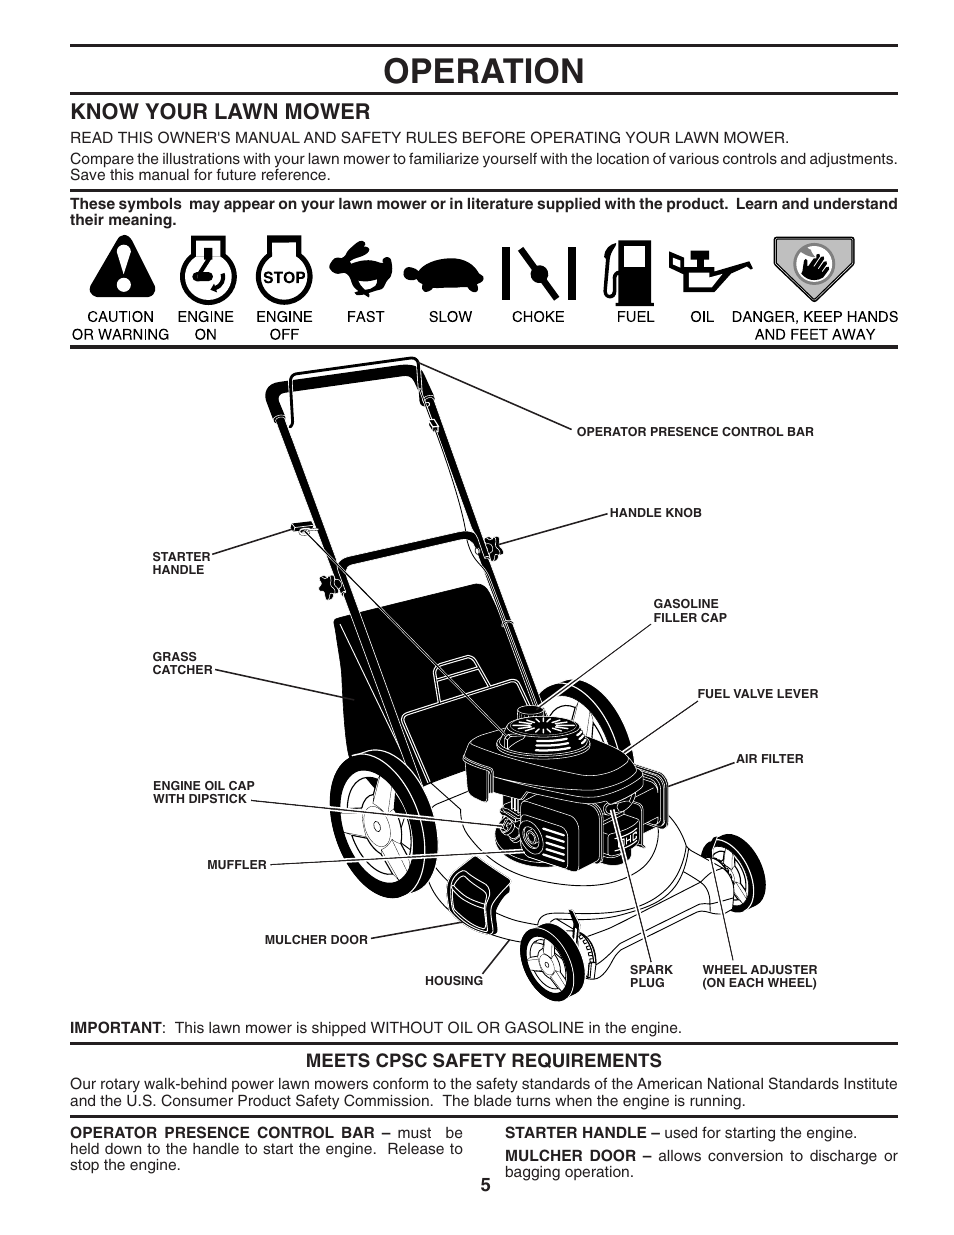 Operation Know Your Lawn Mower Husqvarna 7021p User